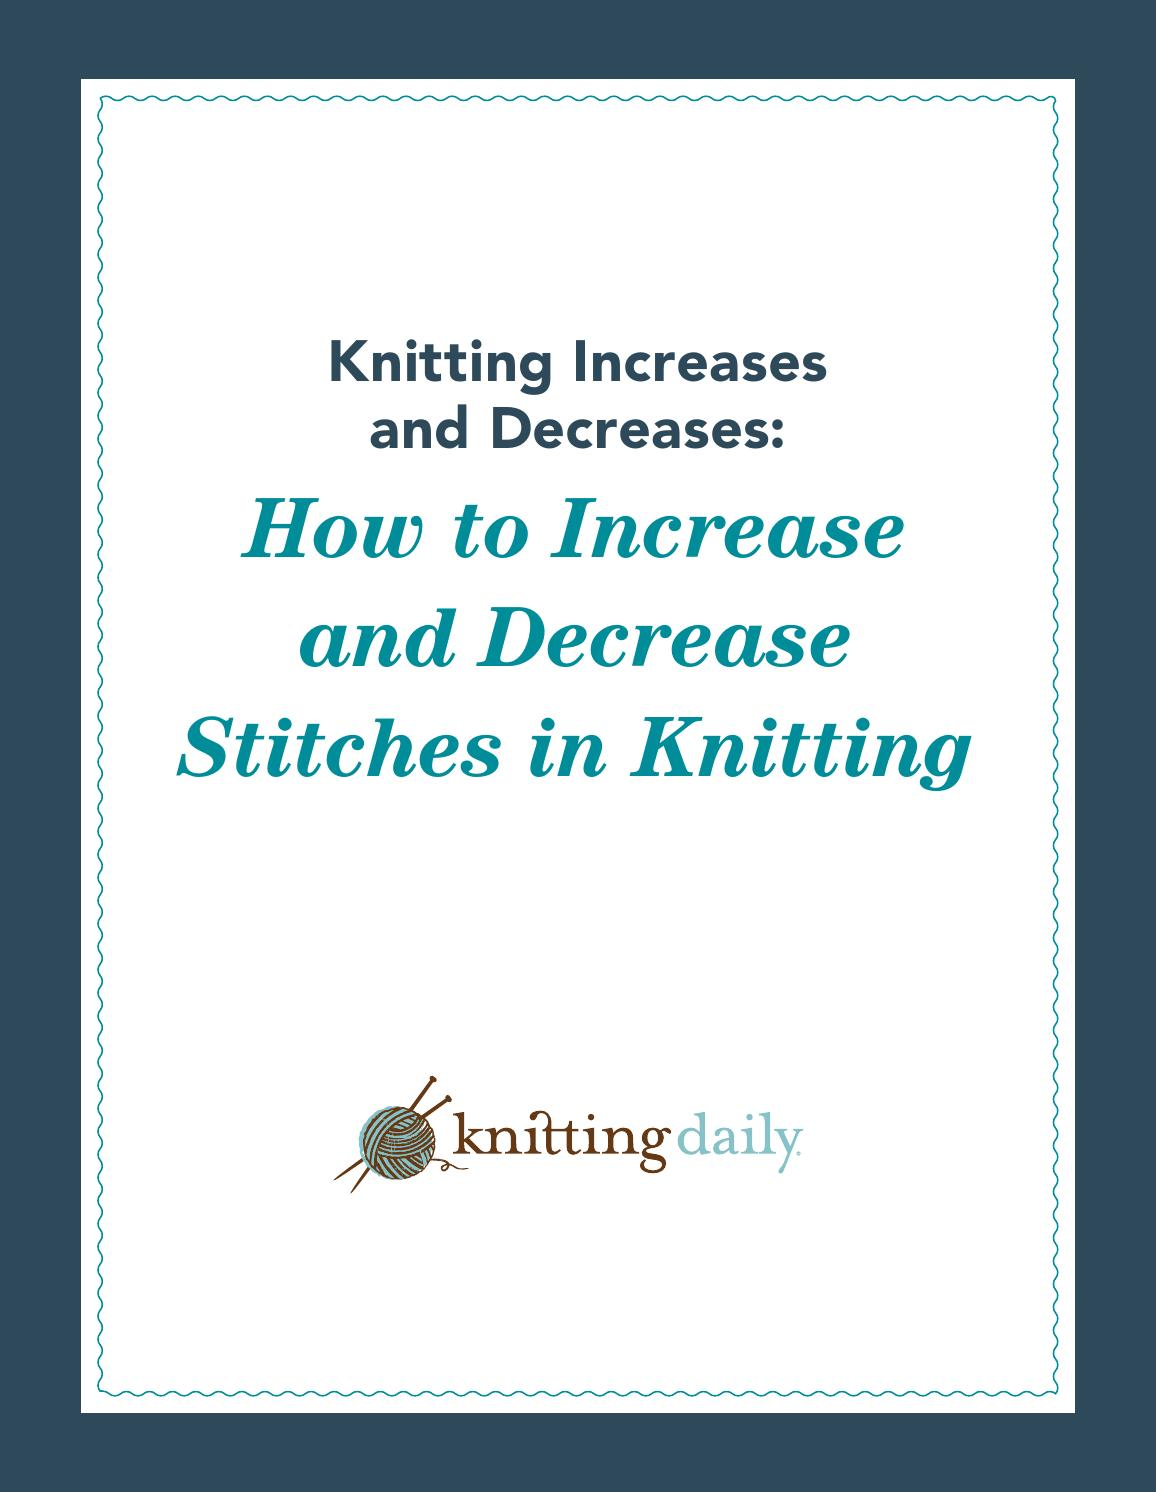 Knitting increases and decreases by jasmina sizz - issuu